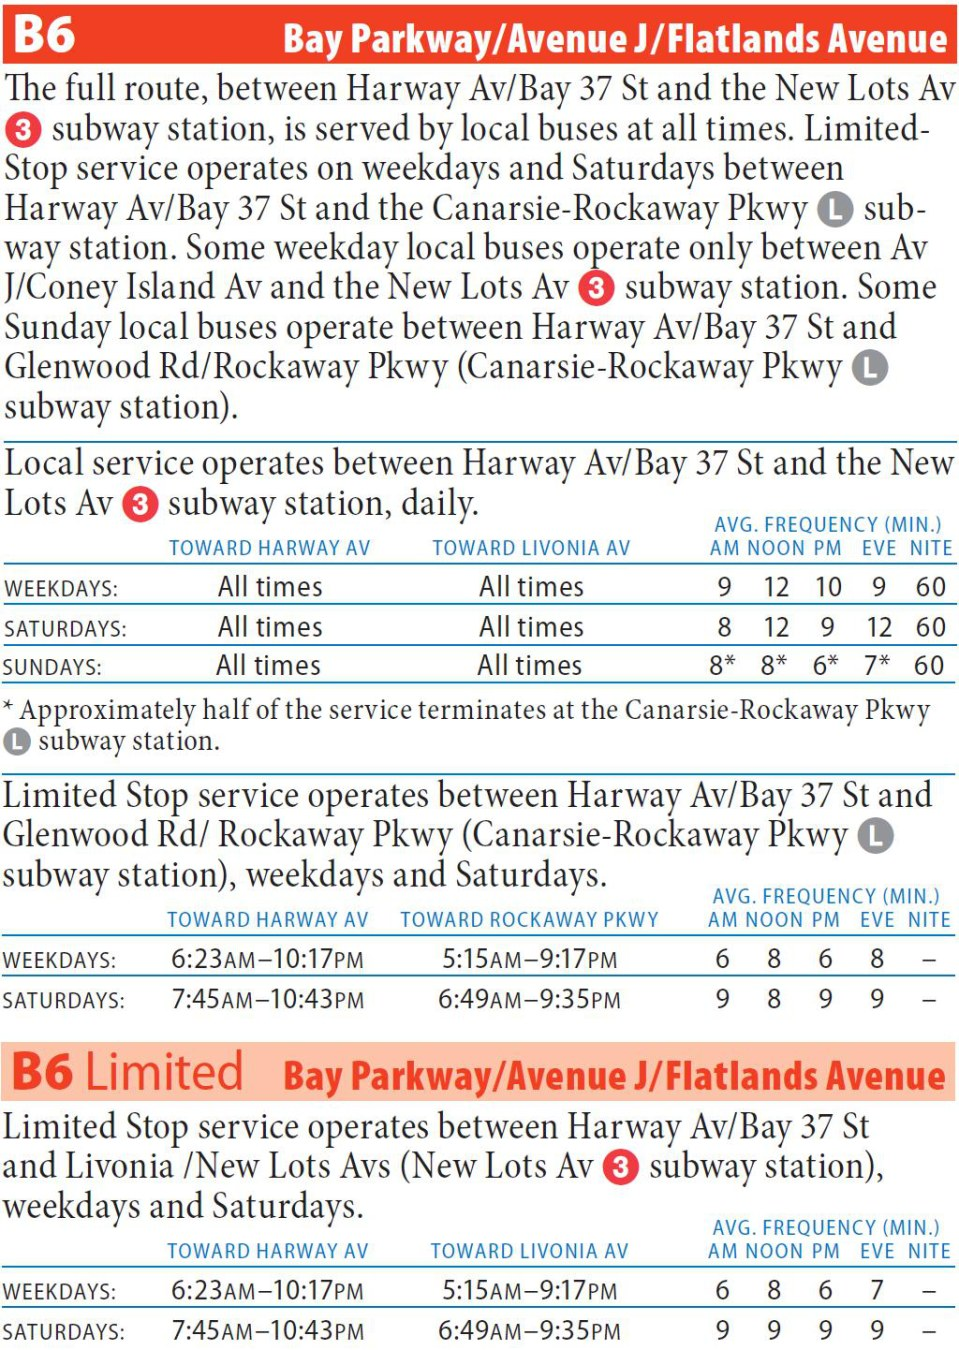 b6 bus - bay parkway/avenue j/flatlands av